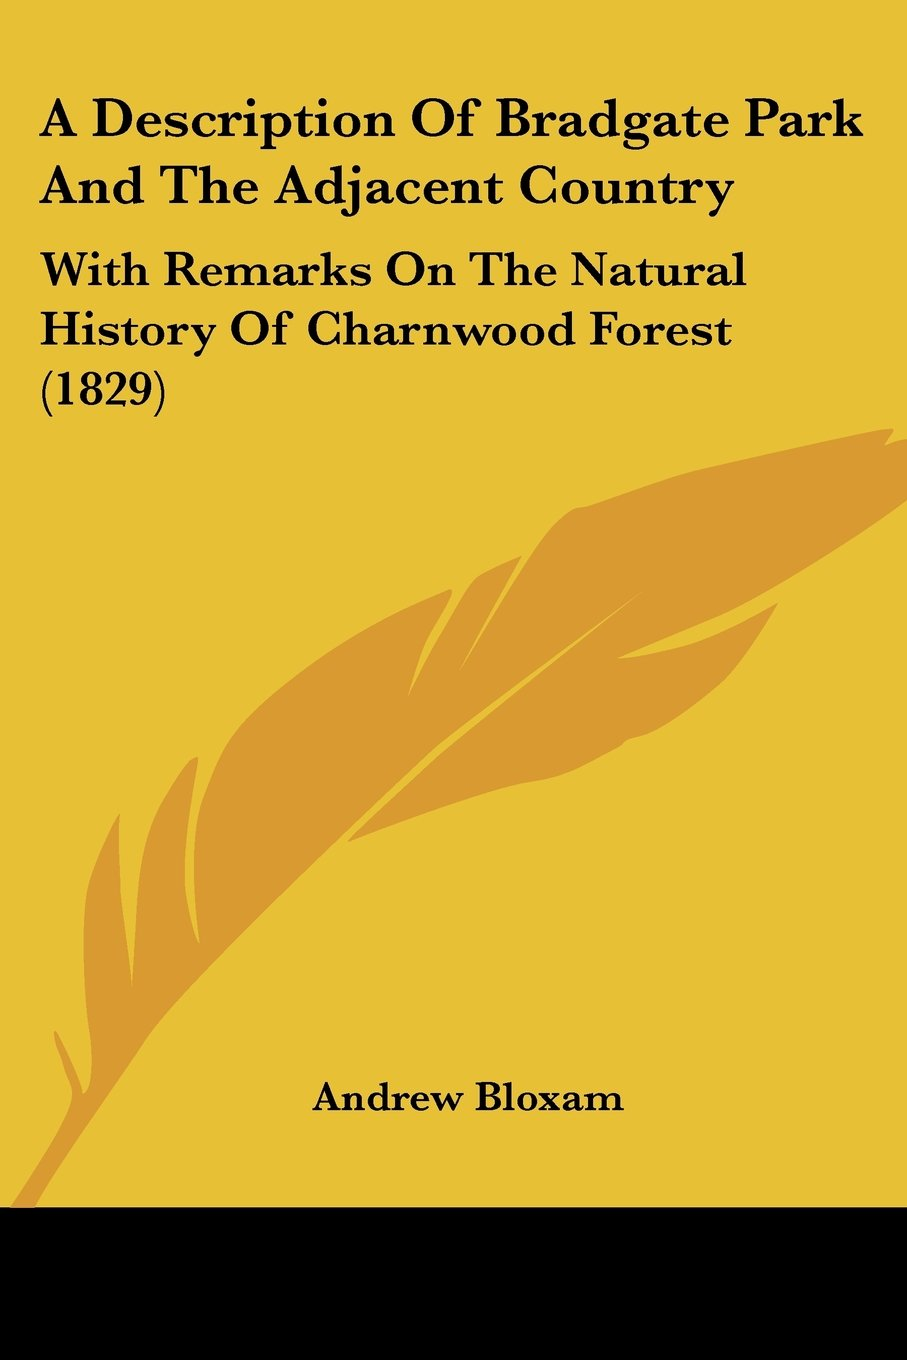 Download A Description Of Bradgate Park And The Adjacent Country: With Remarks On The Natural History Of Charnwood Forest (1829) pdf epub